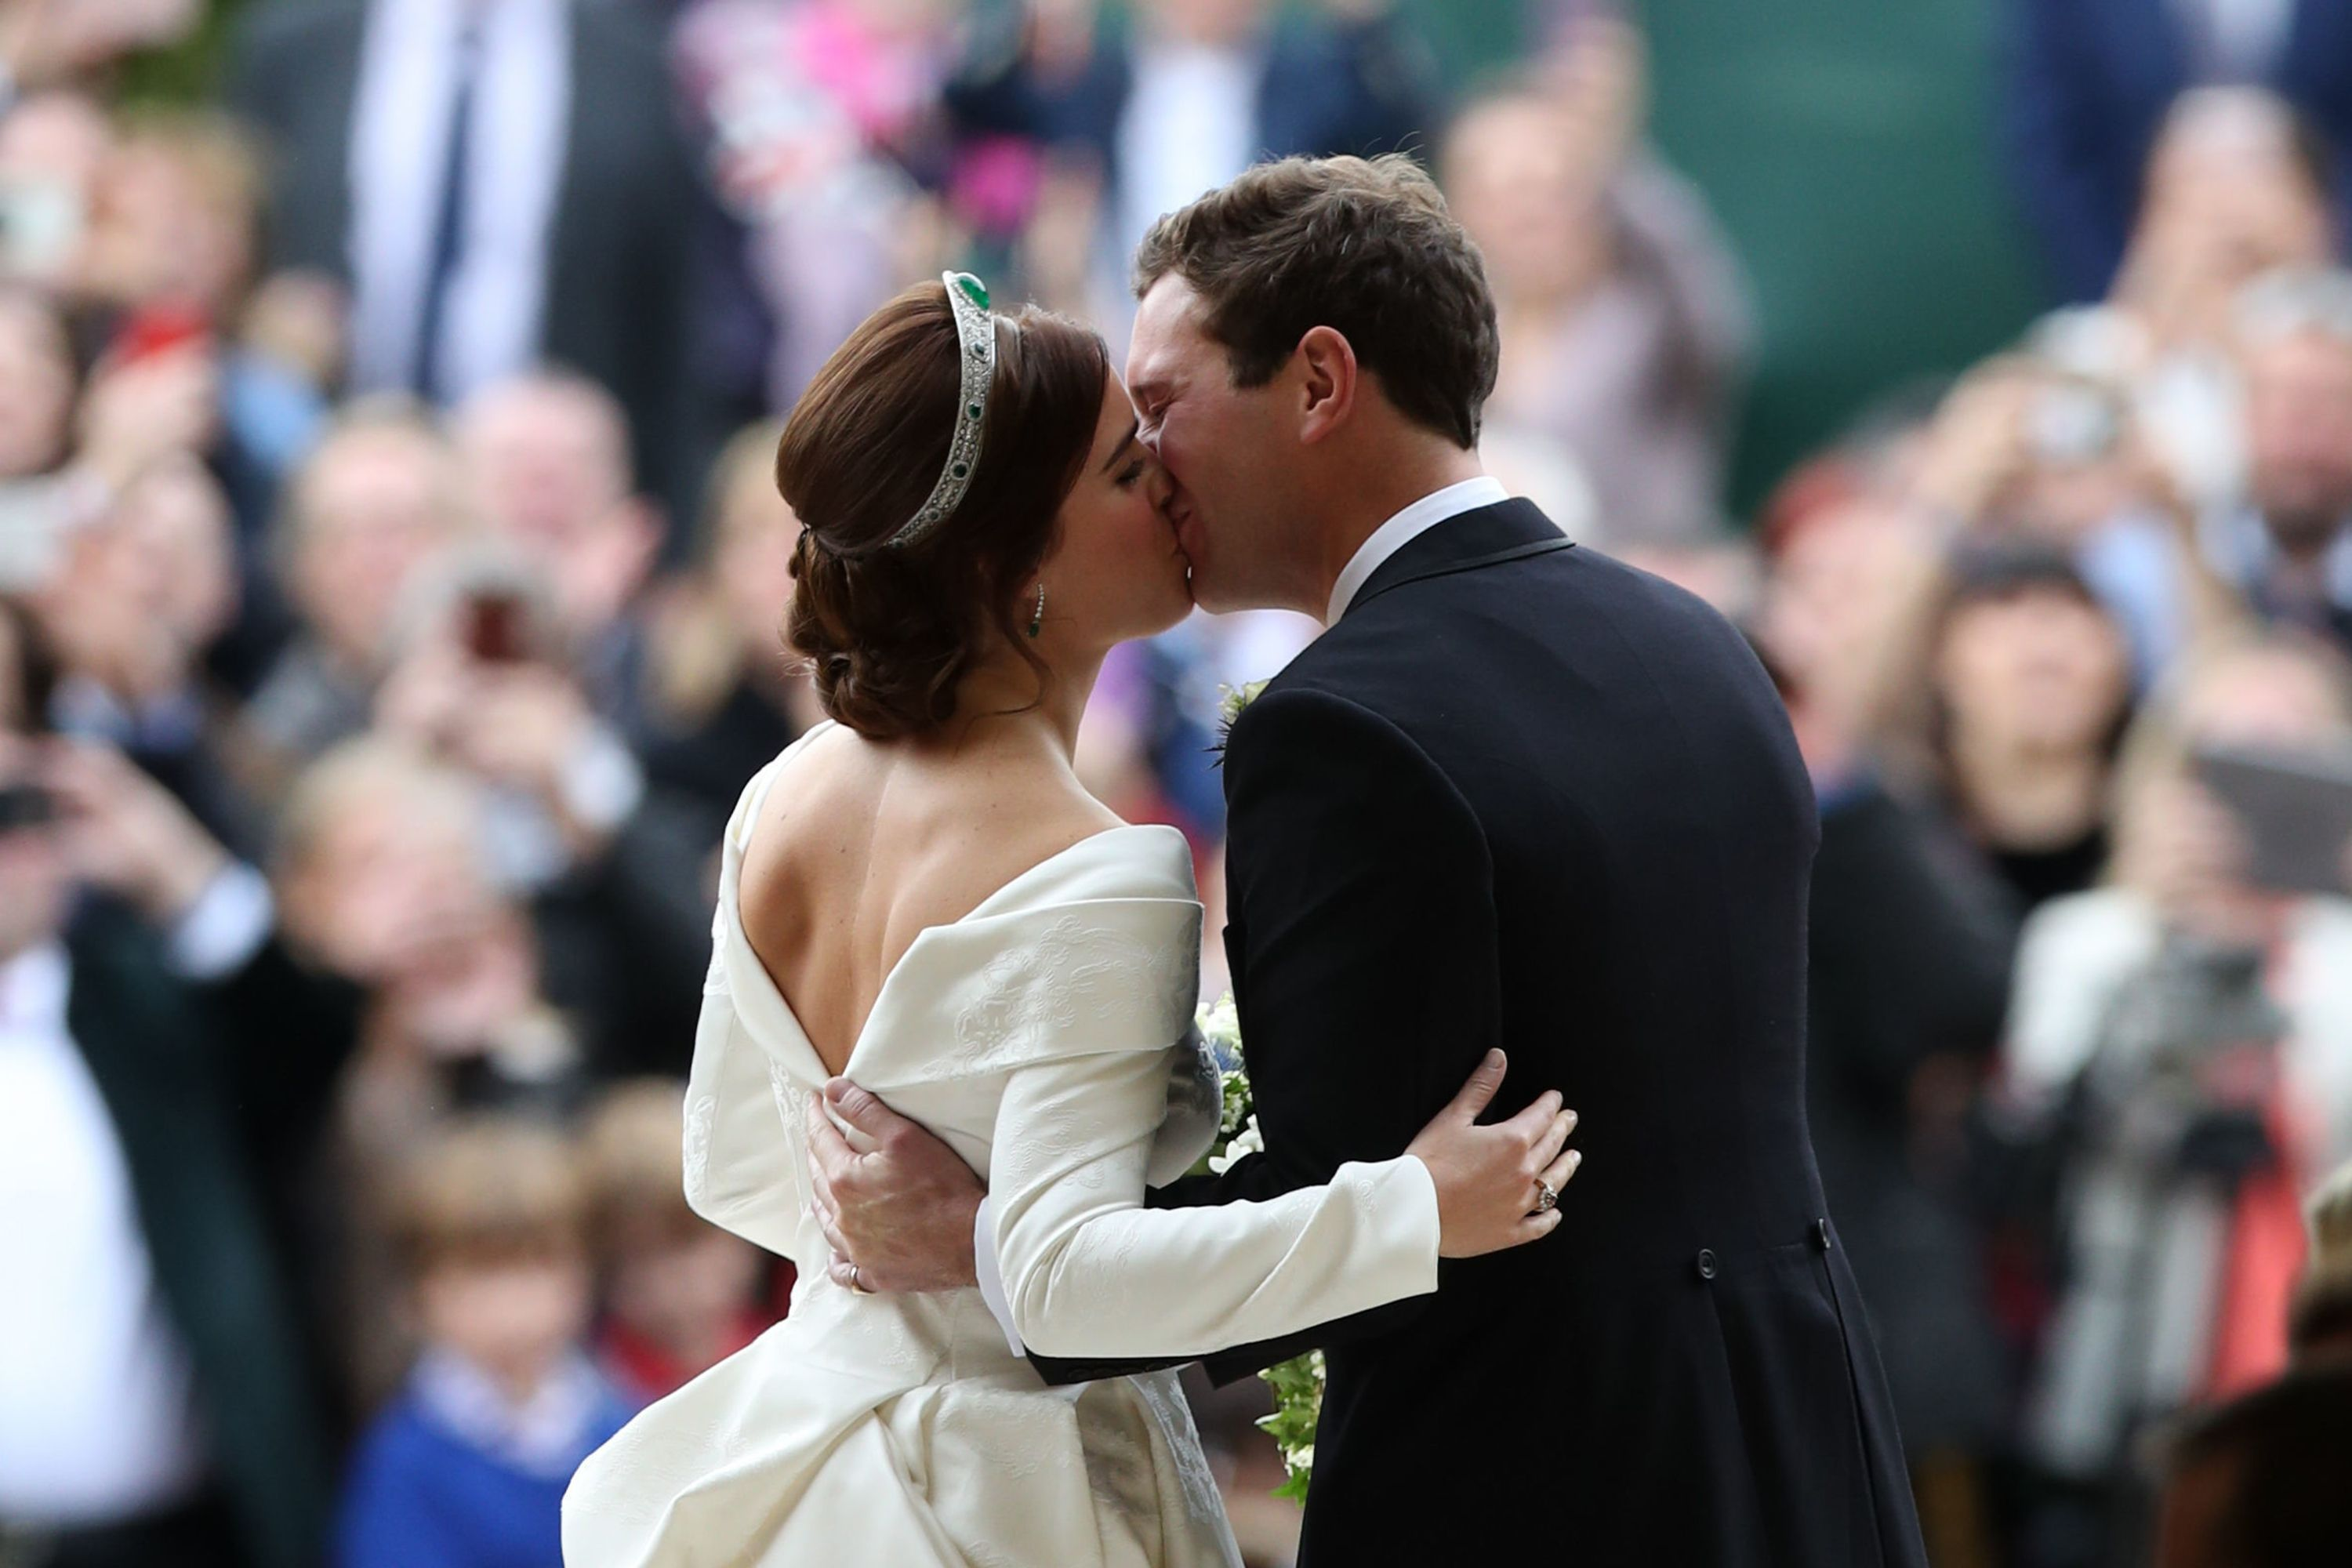 Zac Posen shares beautiful unseen photo of Princess Eugenie in her second wedding dress